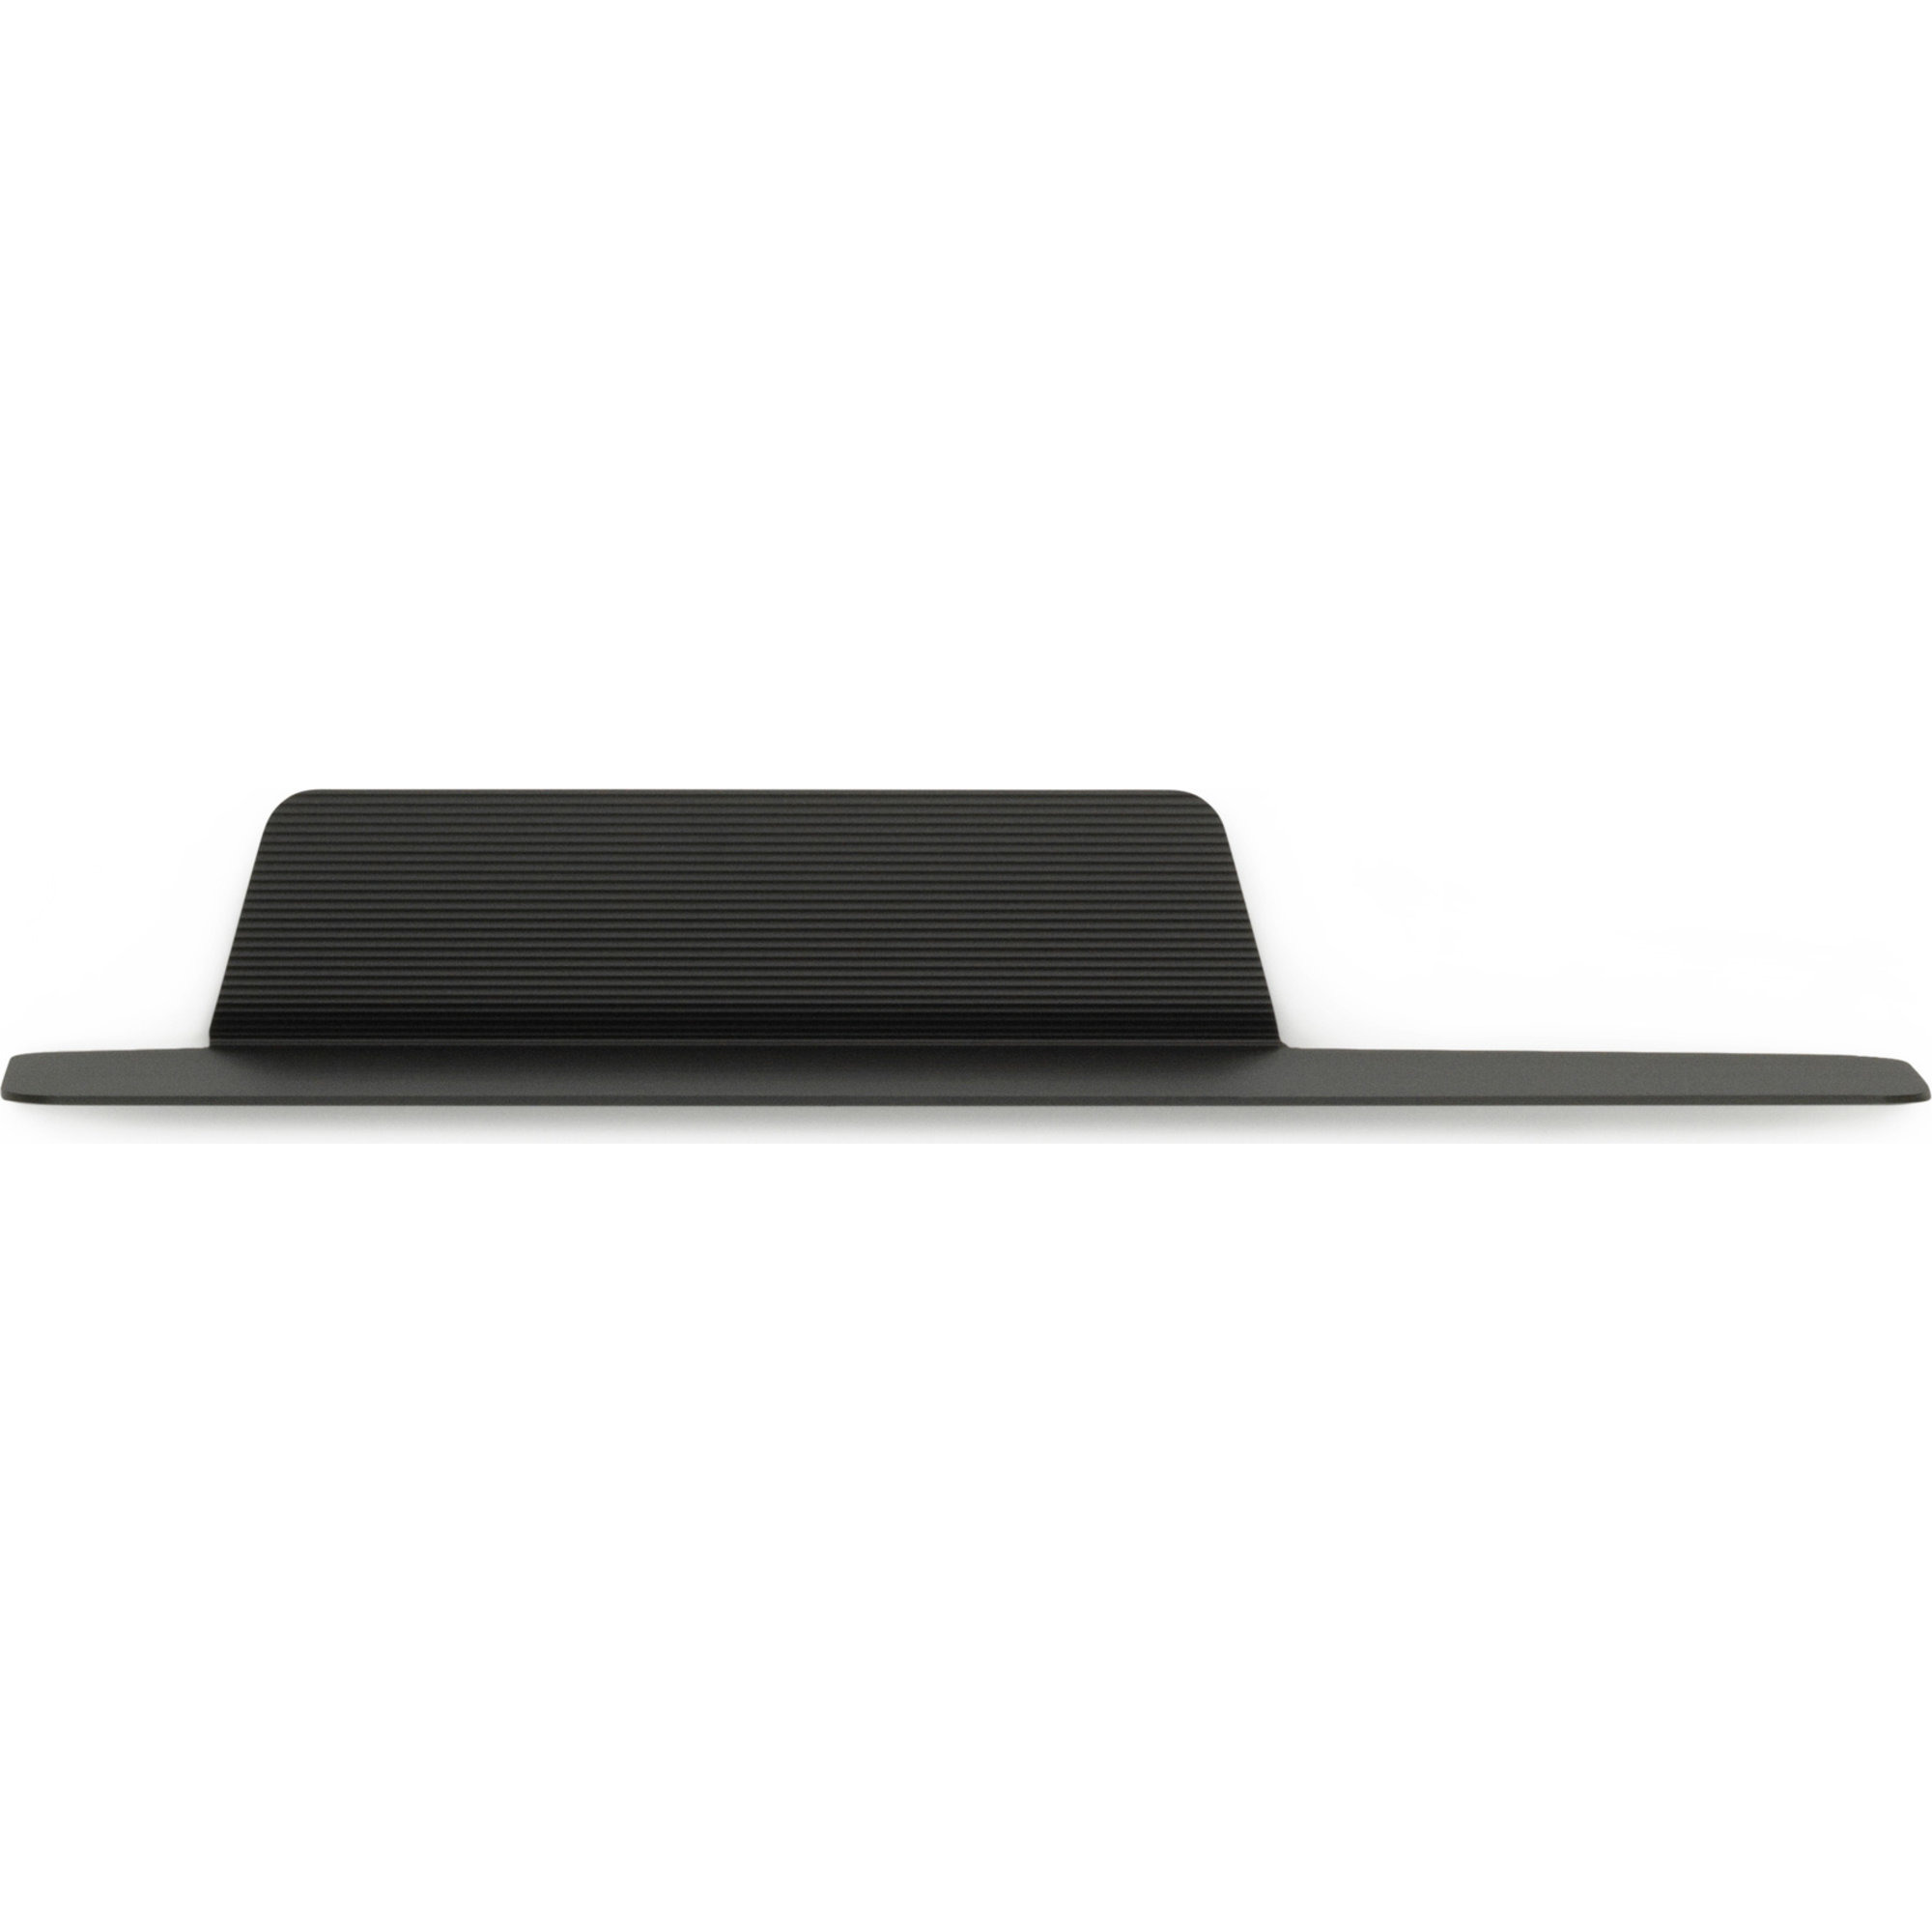 Normann Copenhagen Jet Shelf 80 cm Black